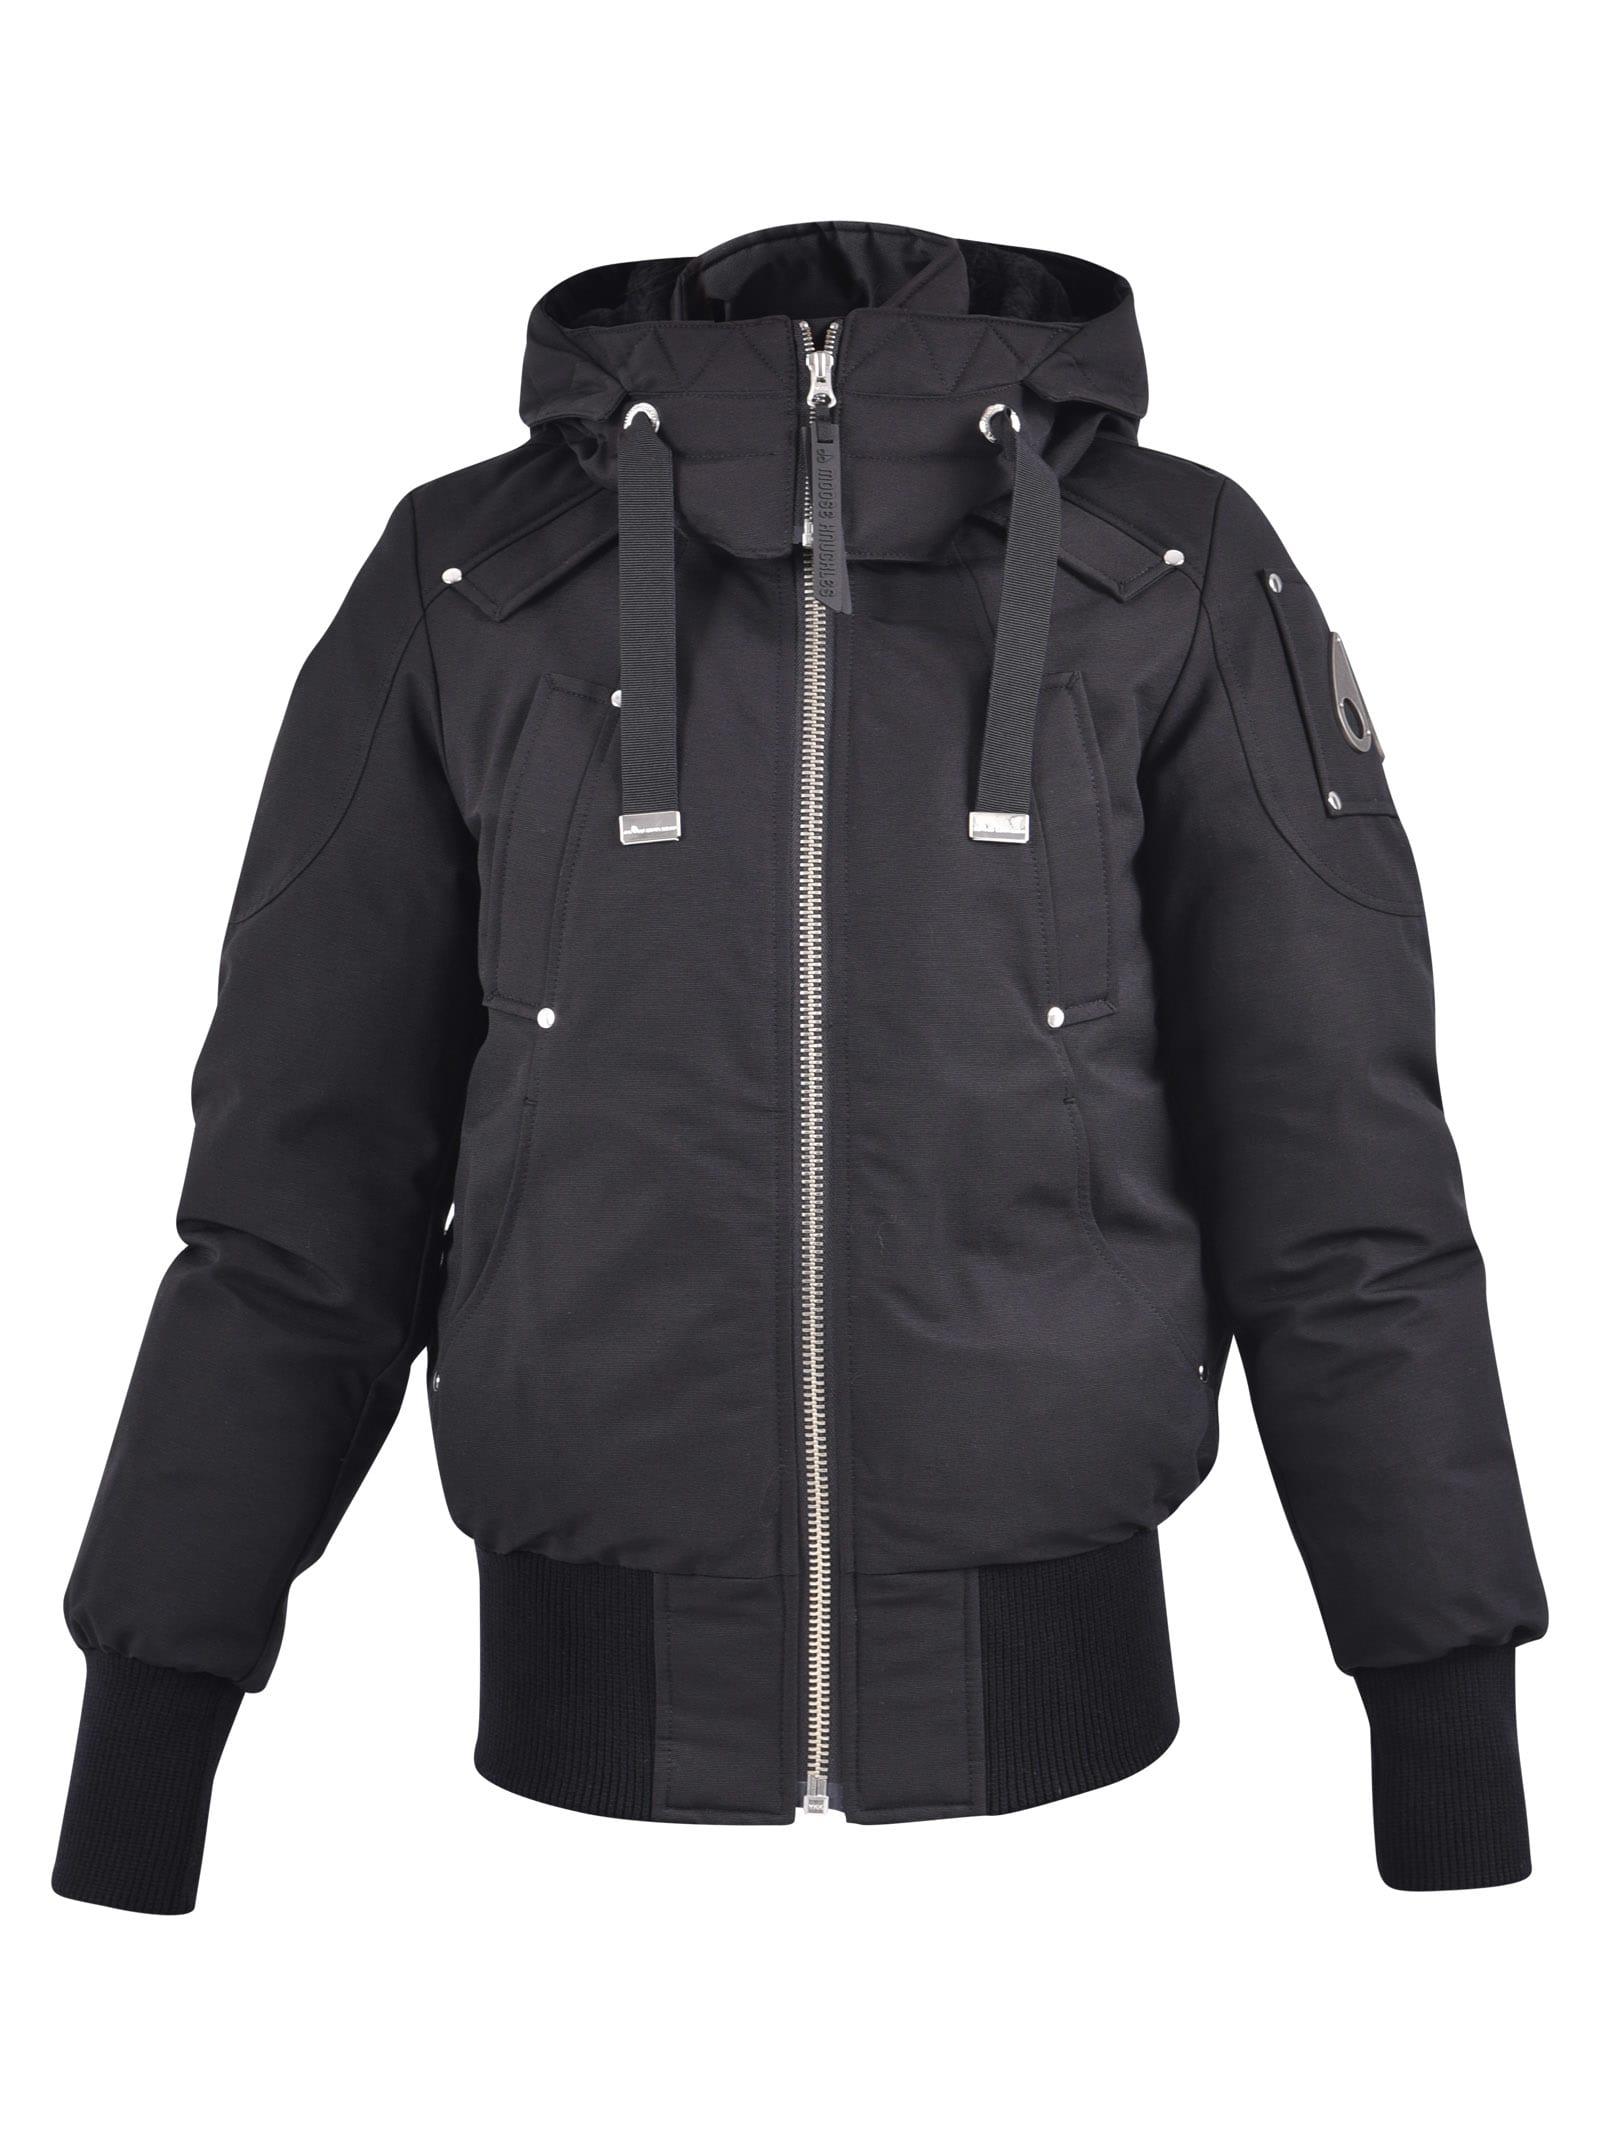 Moose Knuckles Lejeune Jacket